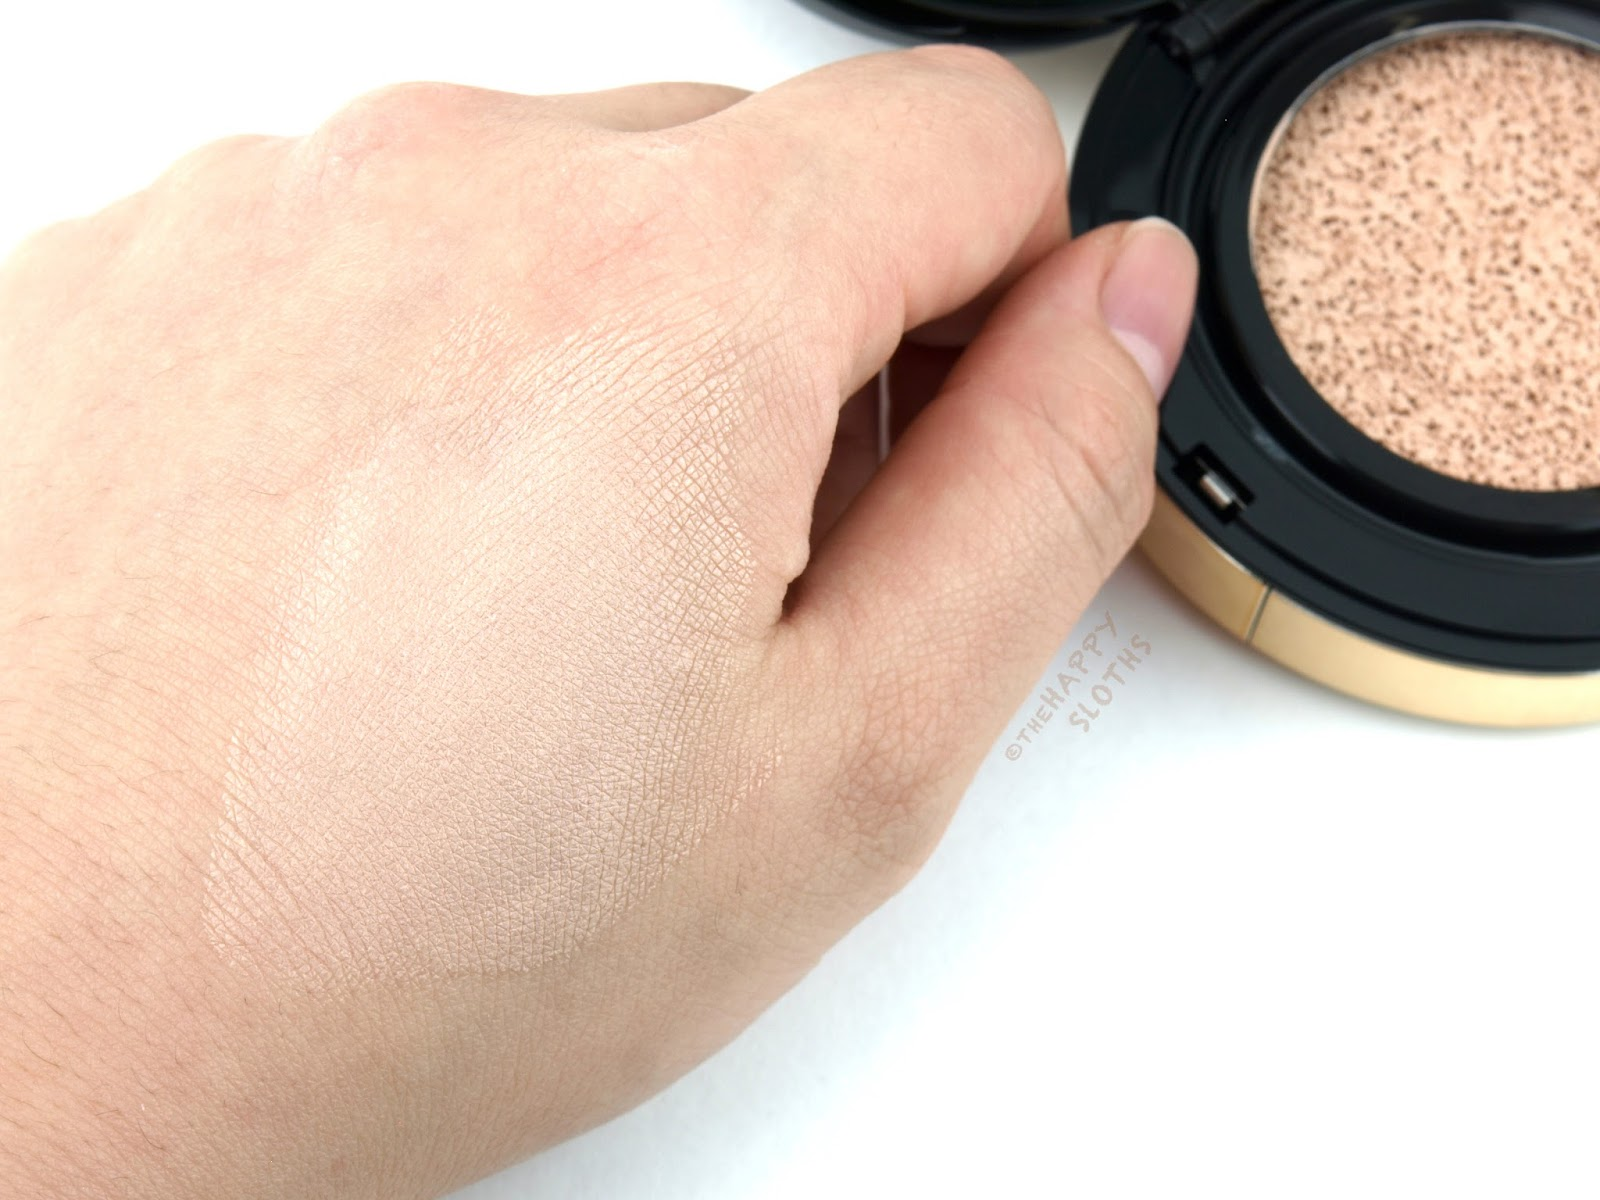 Yves Saint Laurent Le Cushion Encre De Peau Fusion Ink Cushion Foundation